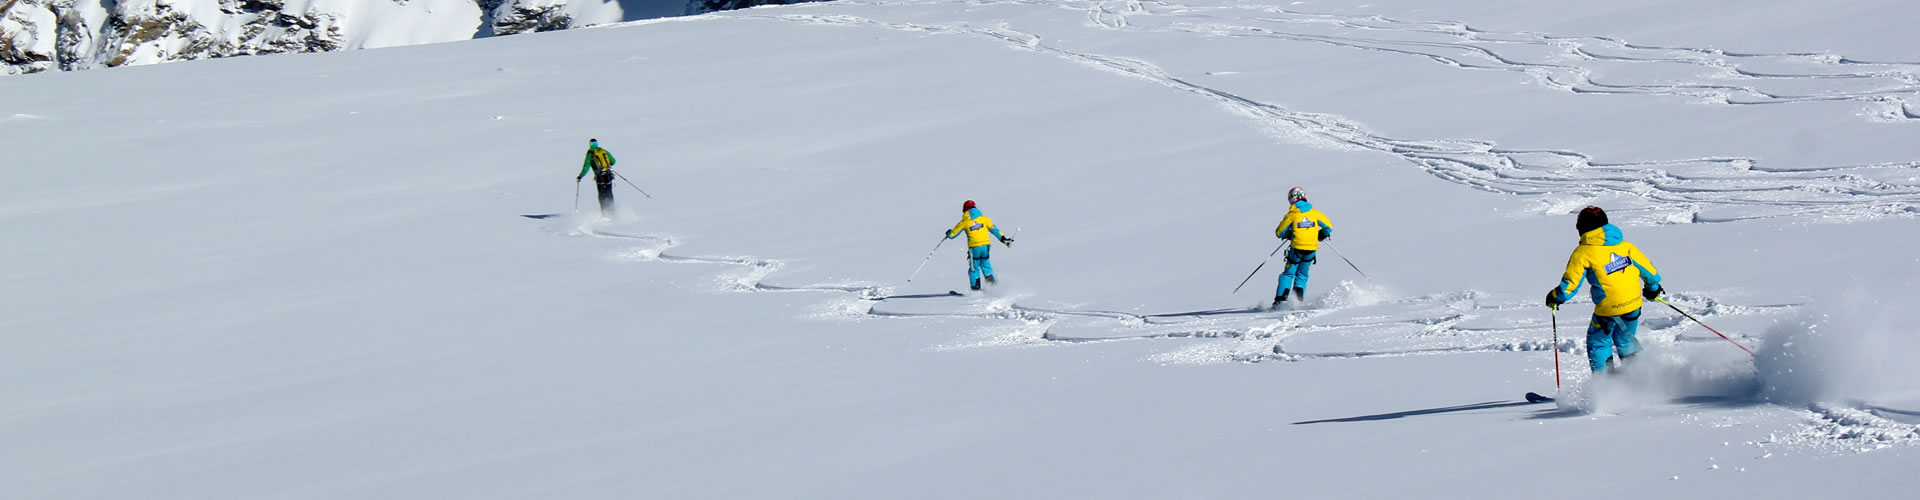 Zermatt - Freeride kids